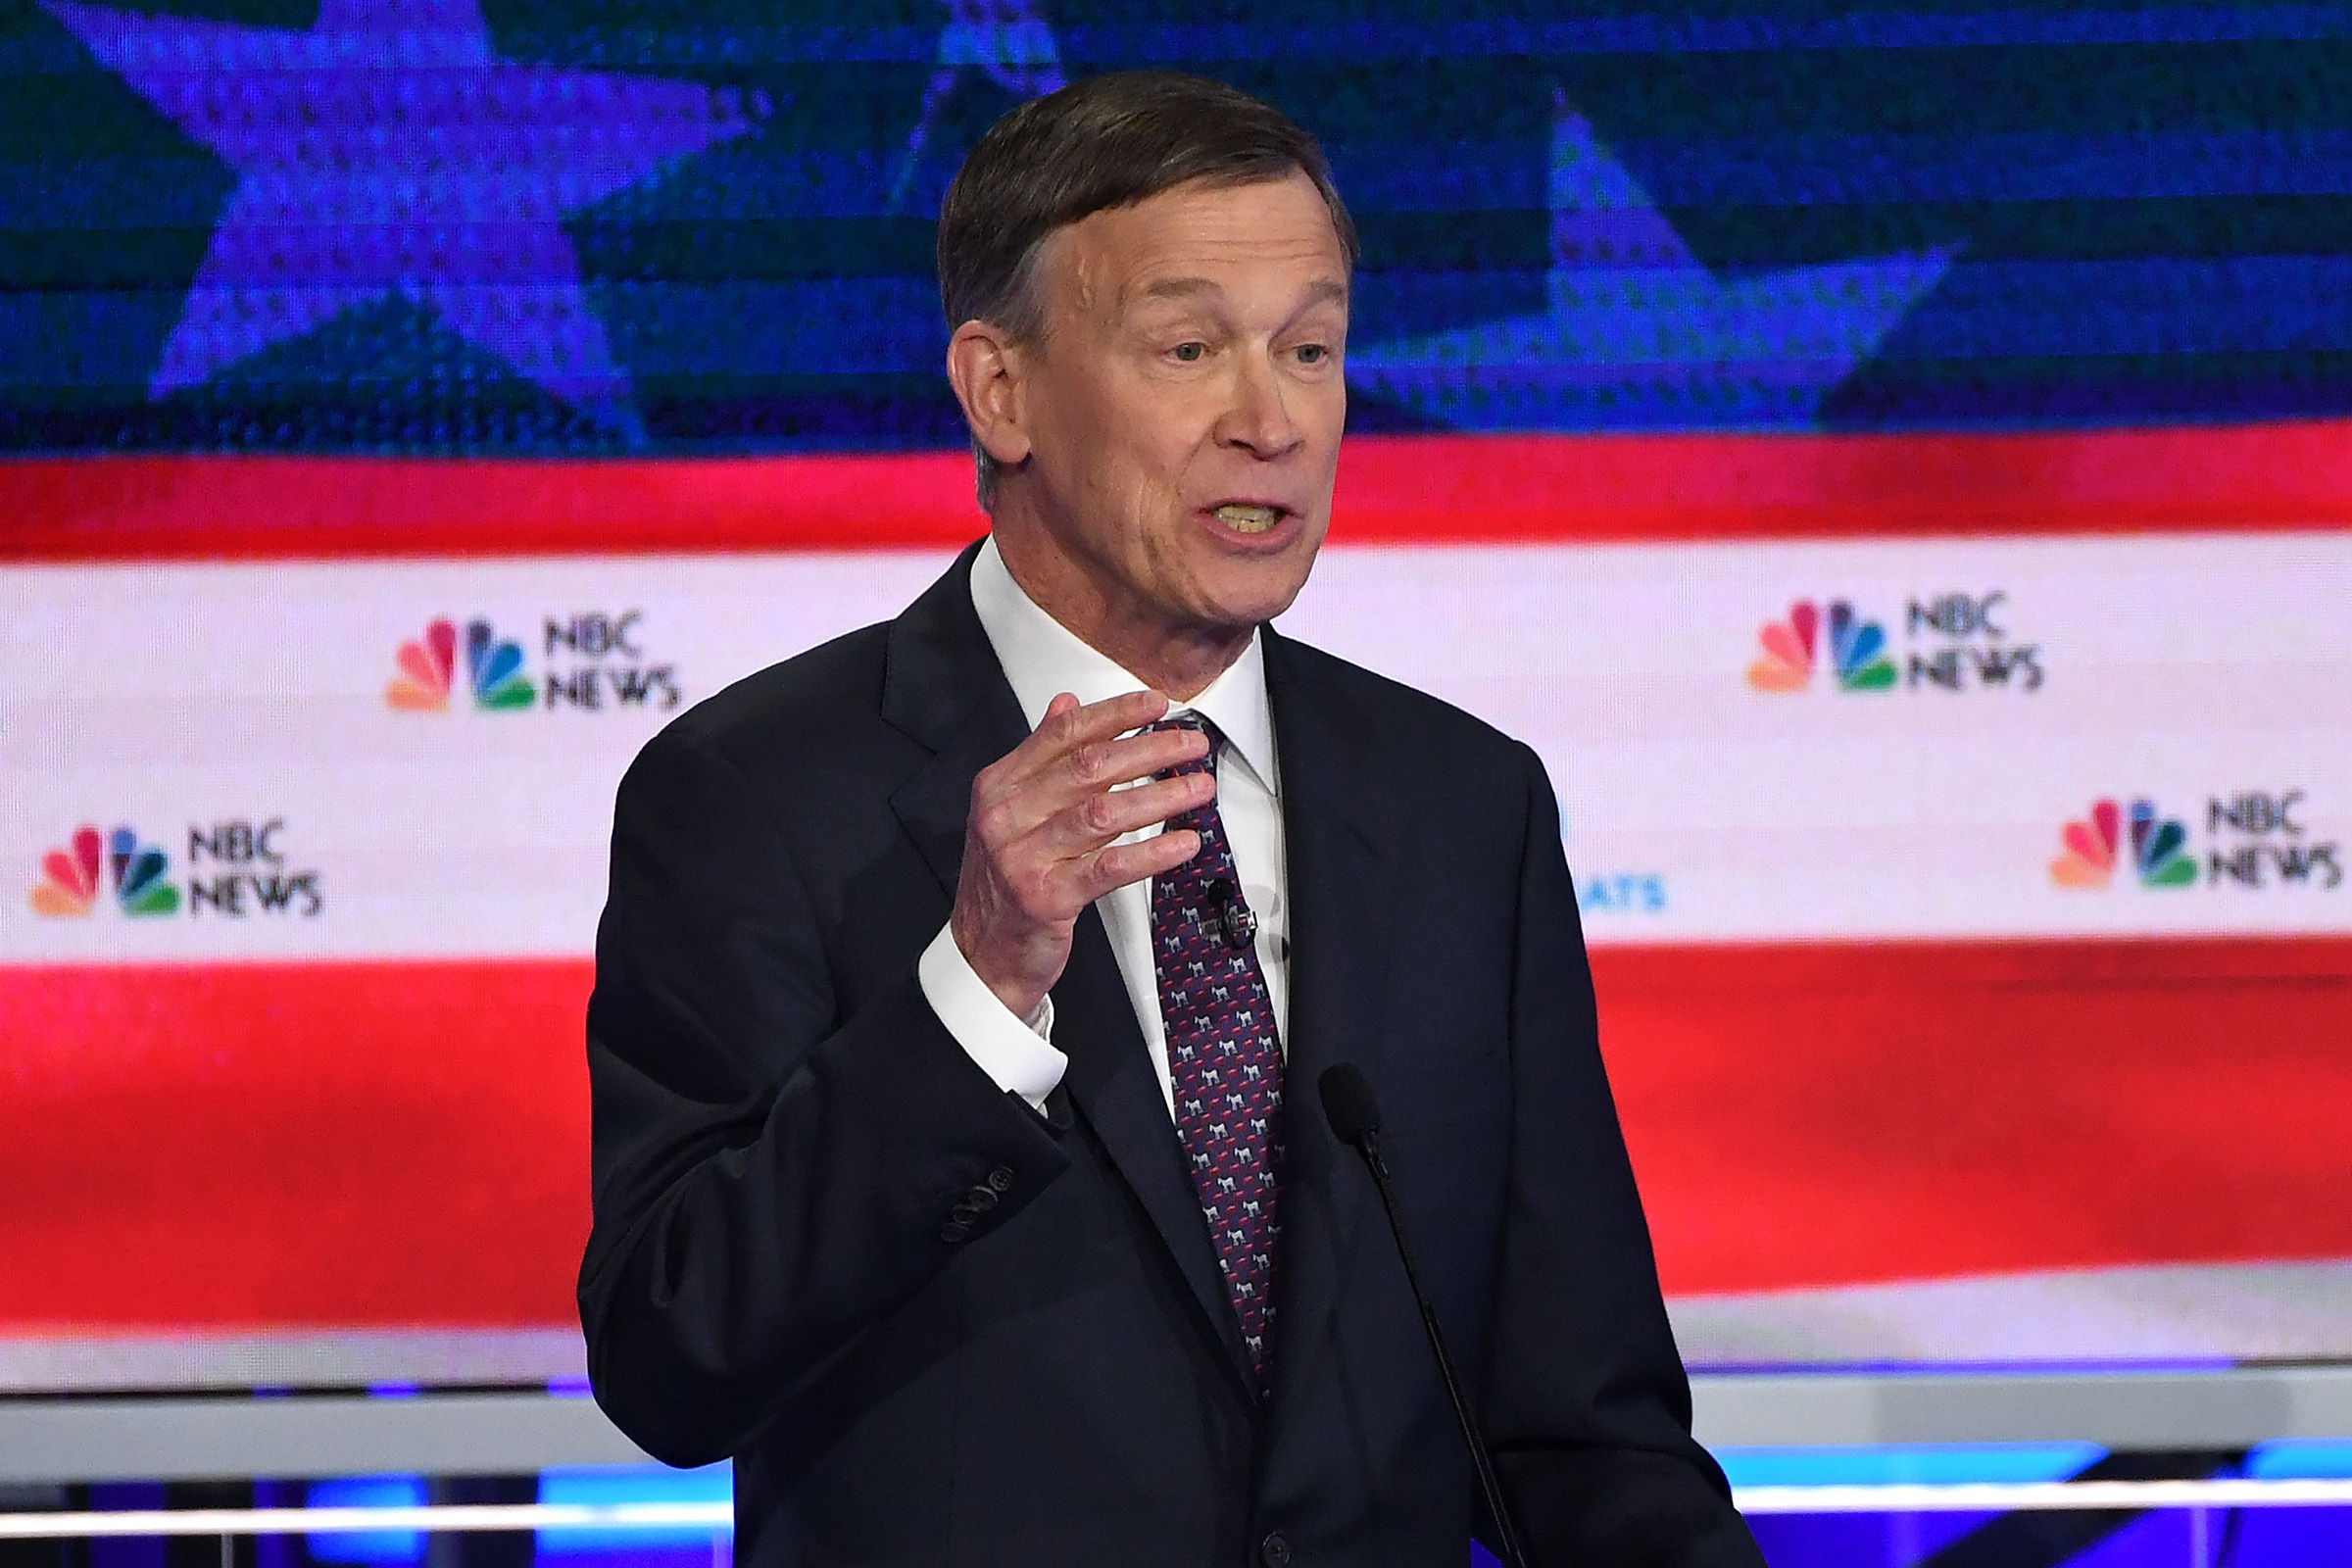 Democratic presidential hopeful former Governor of Colorado John Hickenlooper speaks during the second Democratic primary debate of the 2020 presidential campaign season hosted by NBC News at the Adrienne Arsht Center for the Performing Arts in Miami, Florida, June 27, 2019.